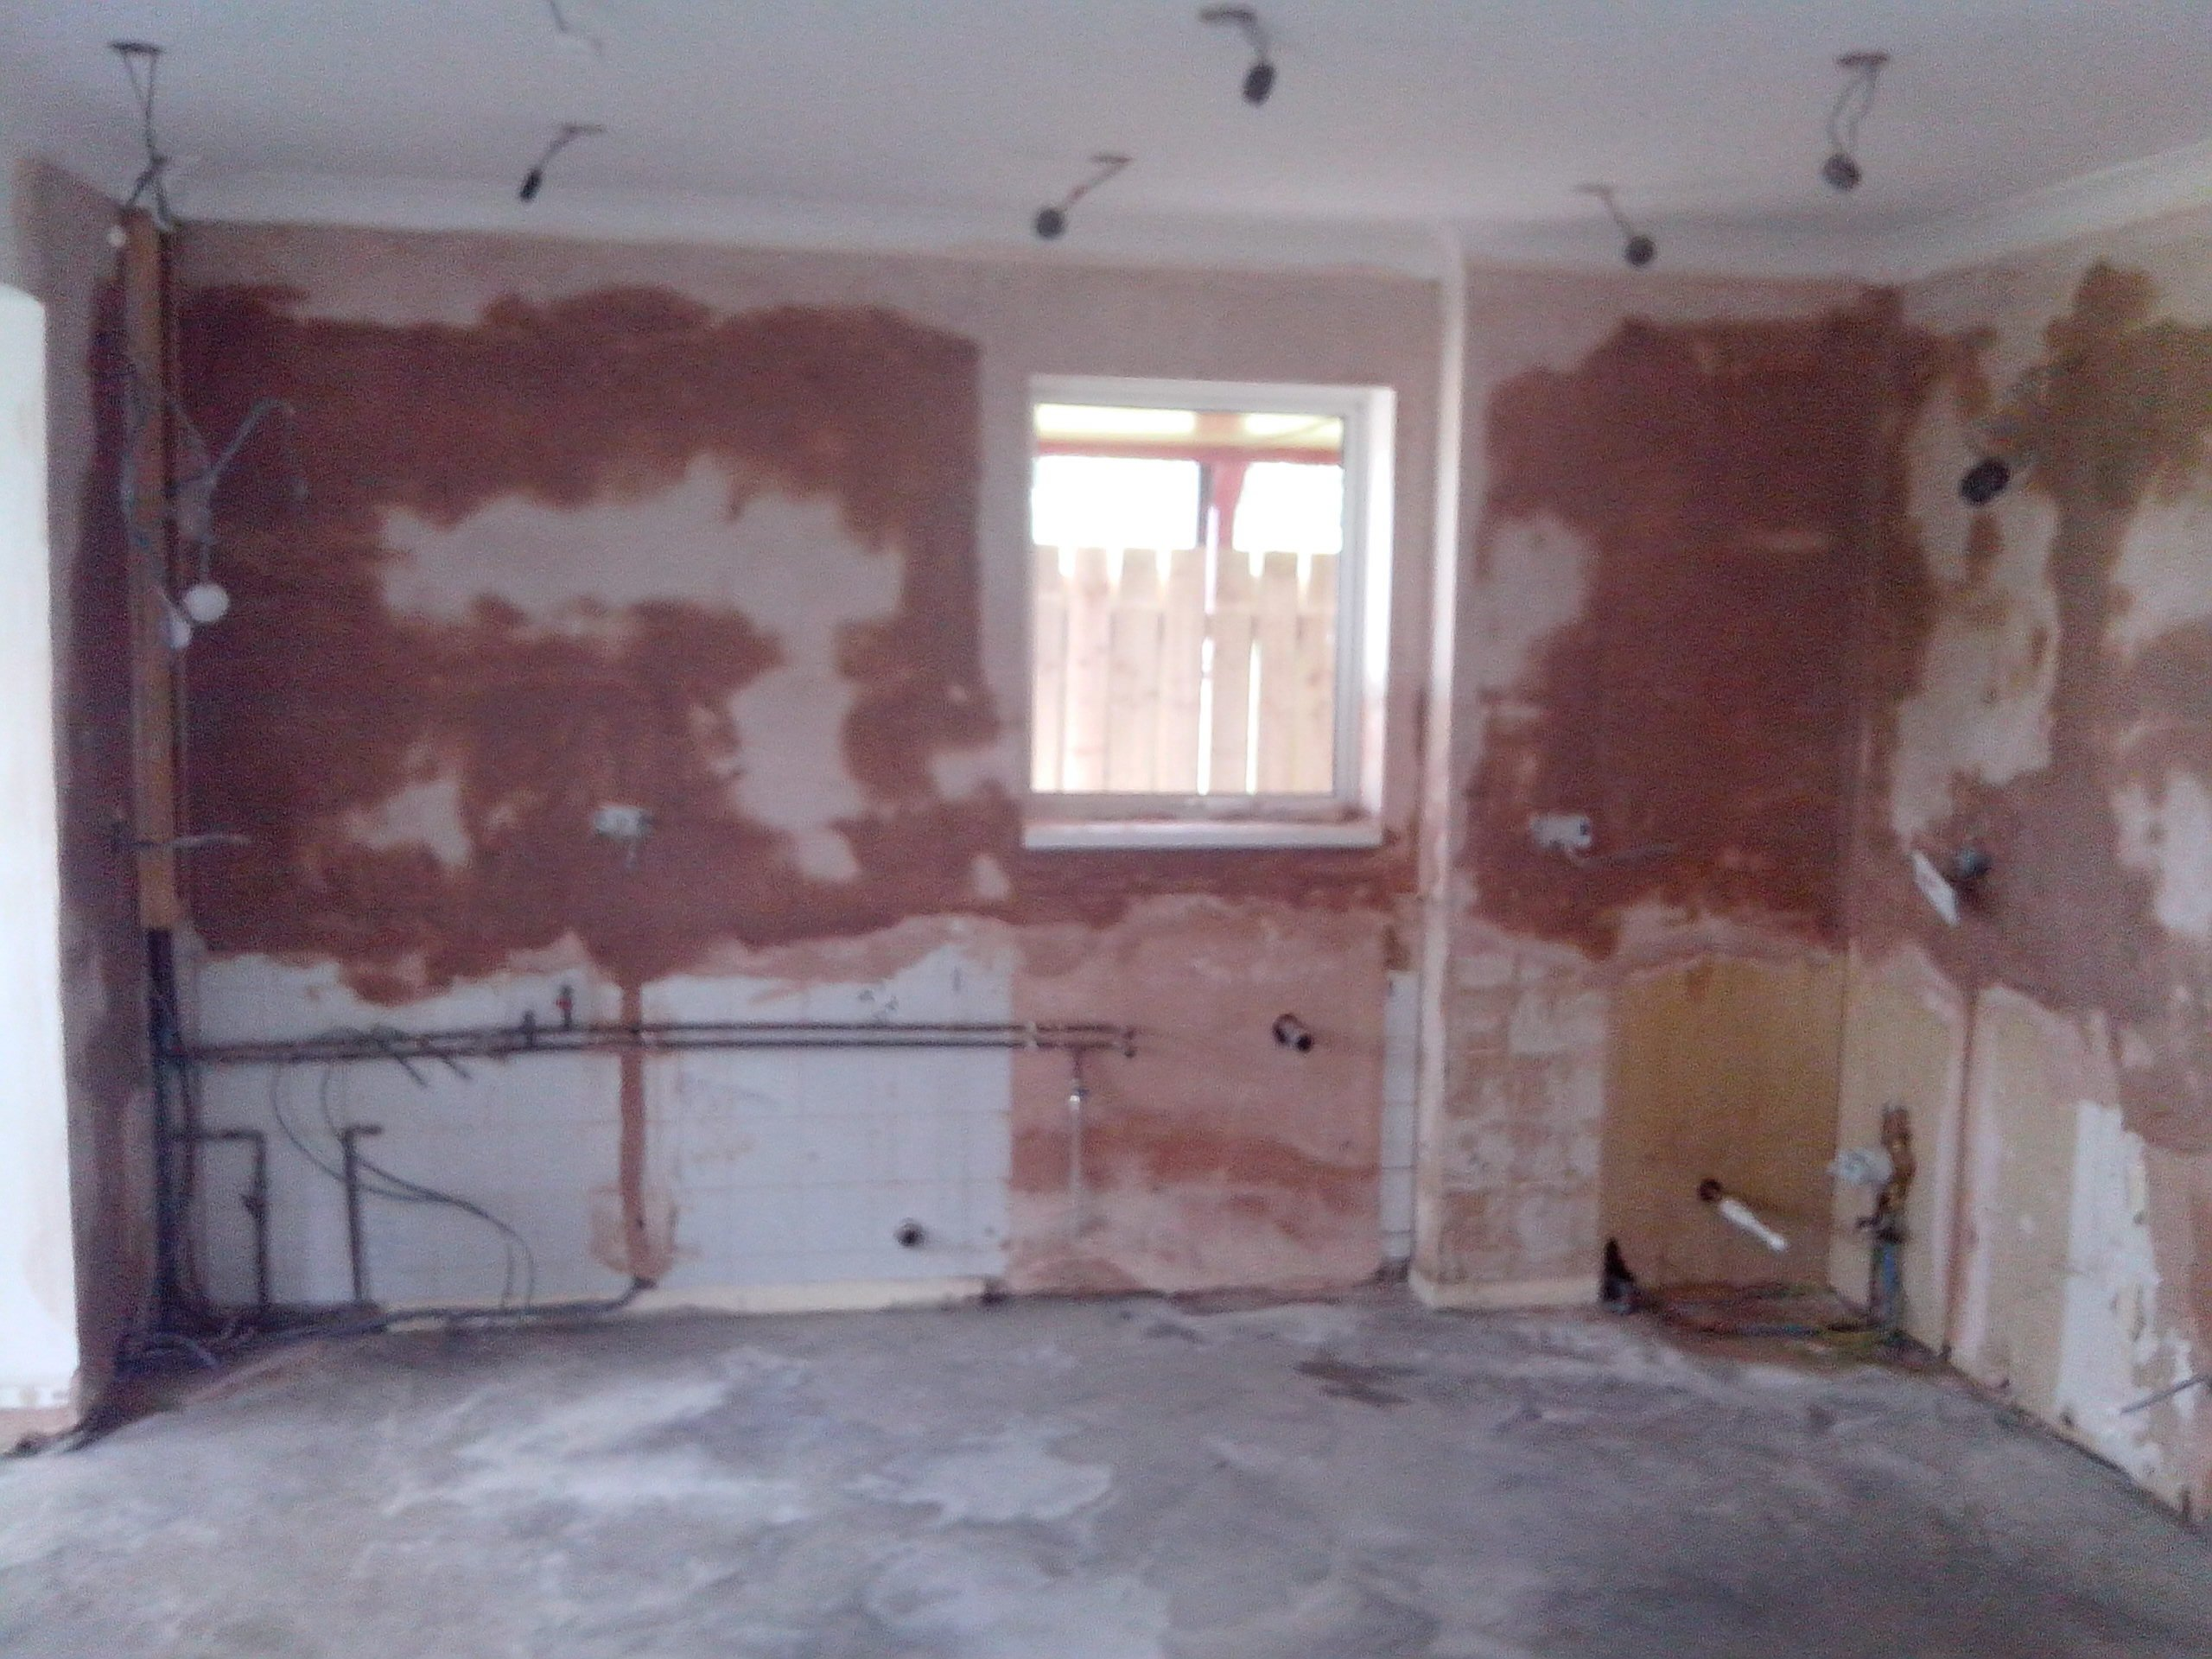 Building renovation projects